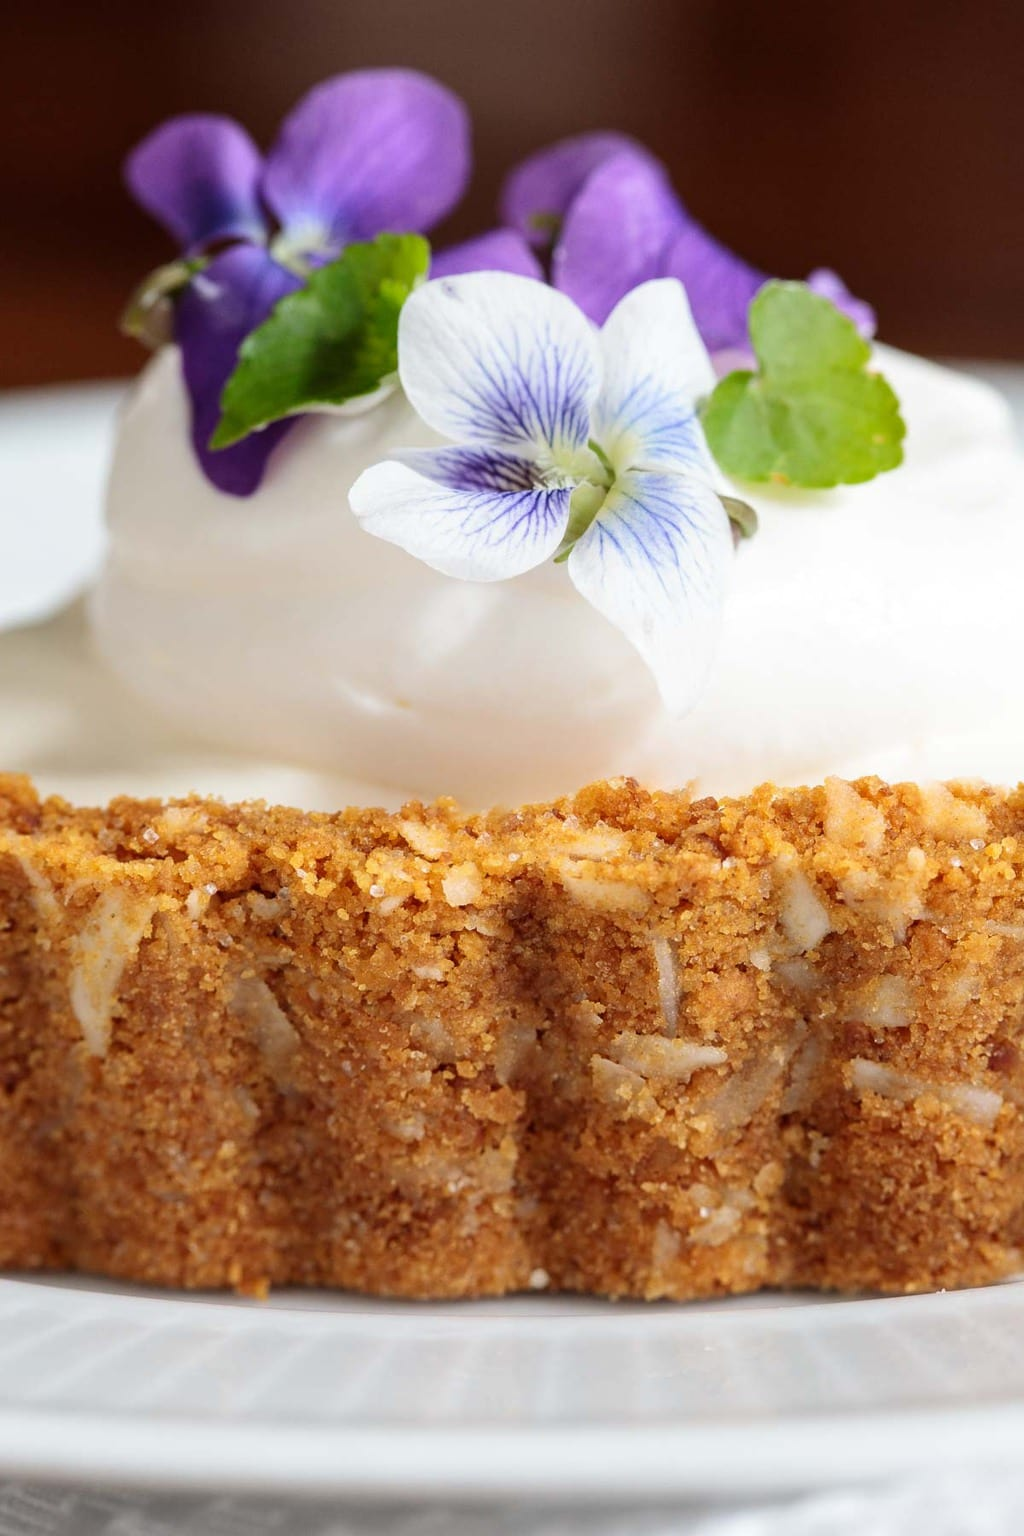 Extreme closeup of the crust of a Limoncello Lemon Tart decorated with whipped cream and wild violets.